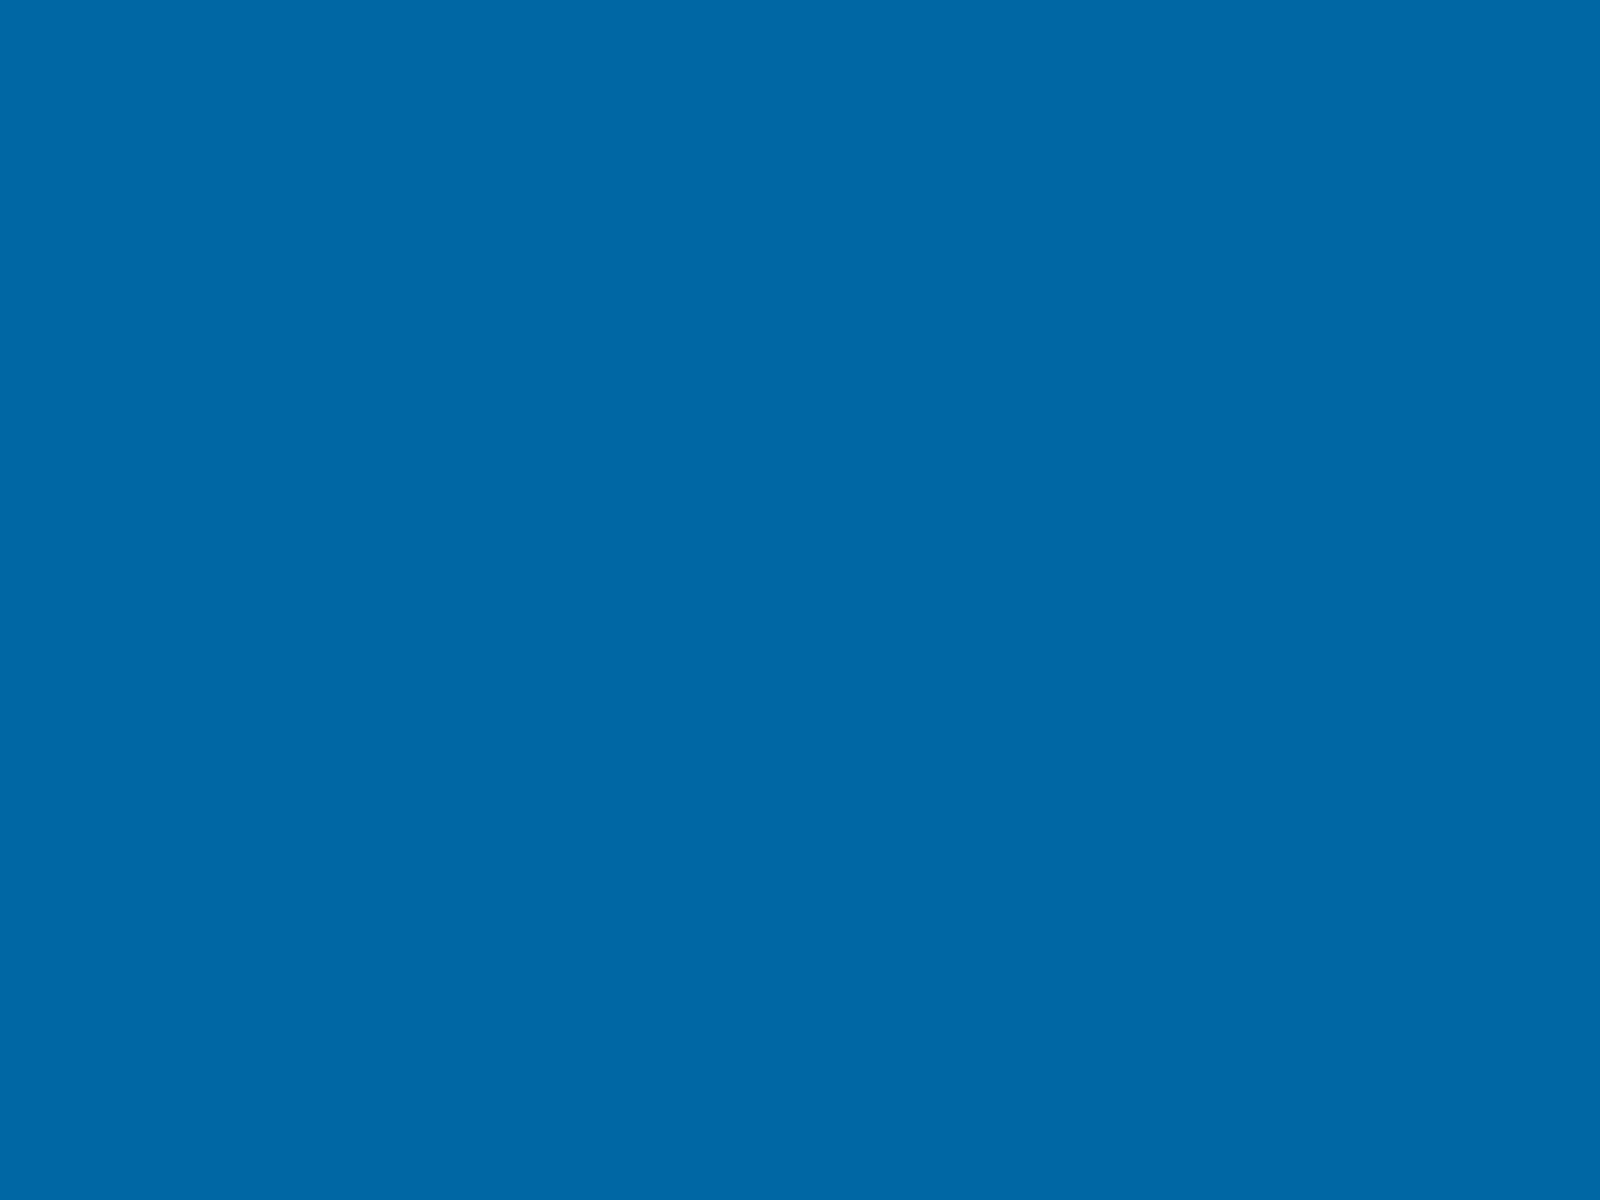 1600x1200 Medium Persian Blue Solid Color Background